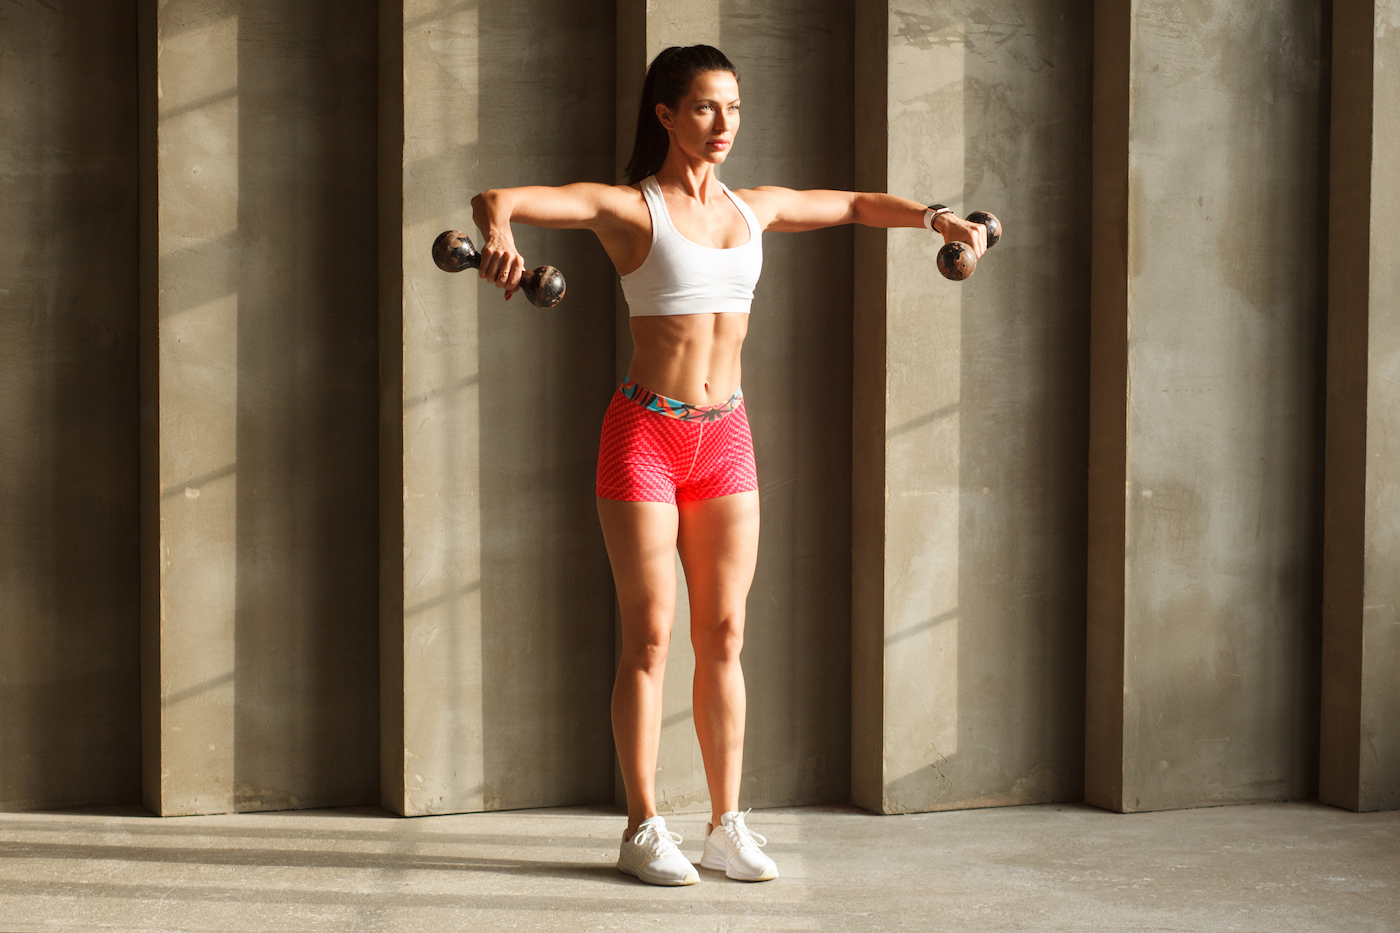 Thumbnail for Upright Rows Are the Back- and Shoulder-Strengthening Move Missing From Your Workout